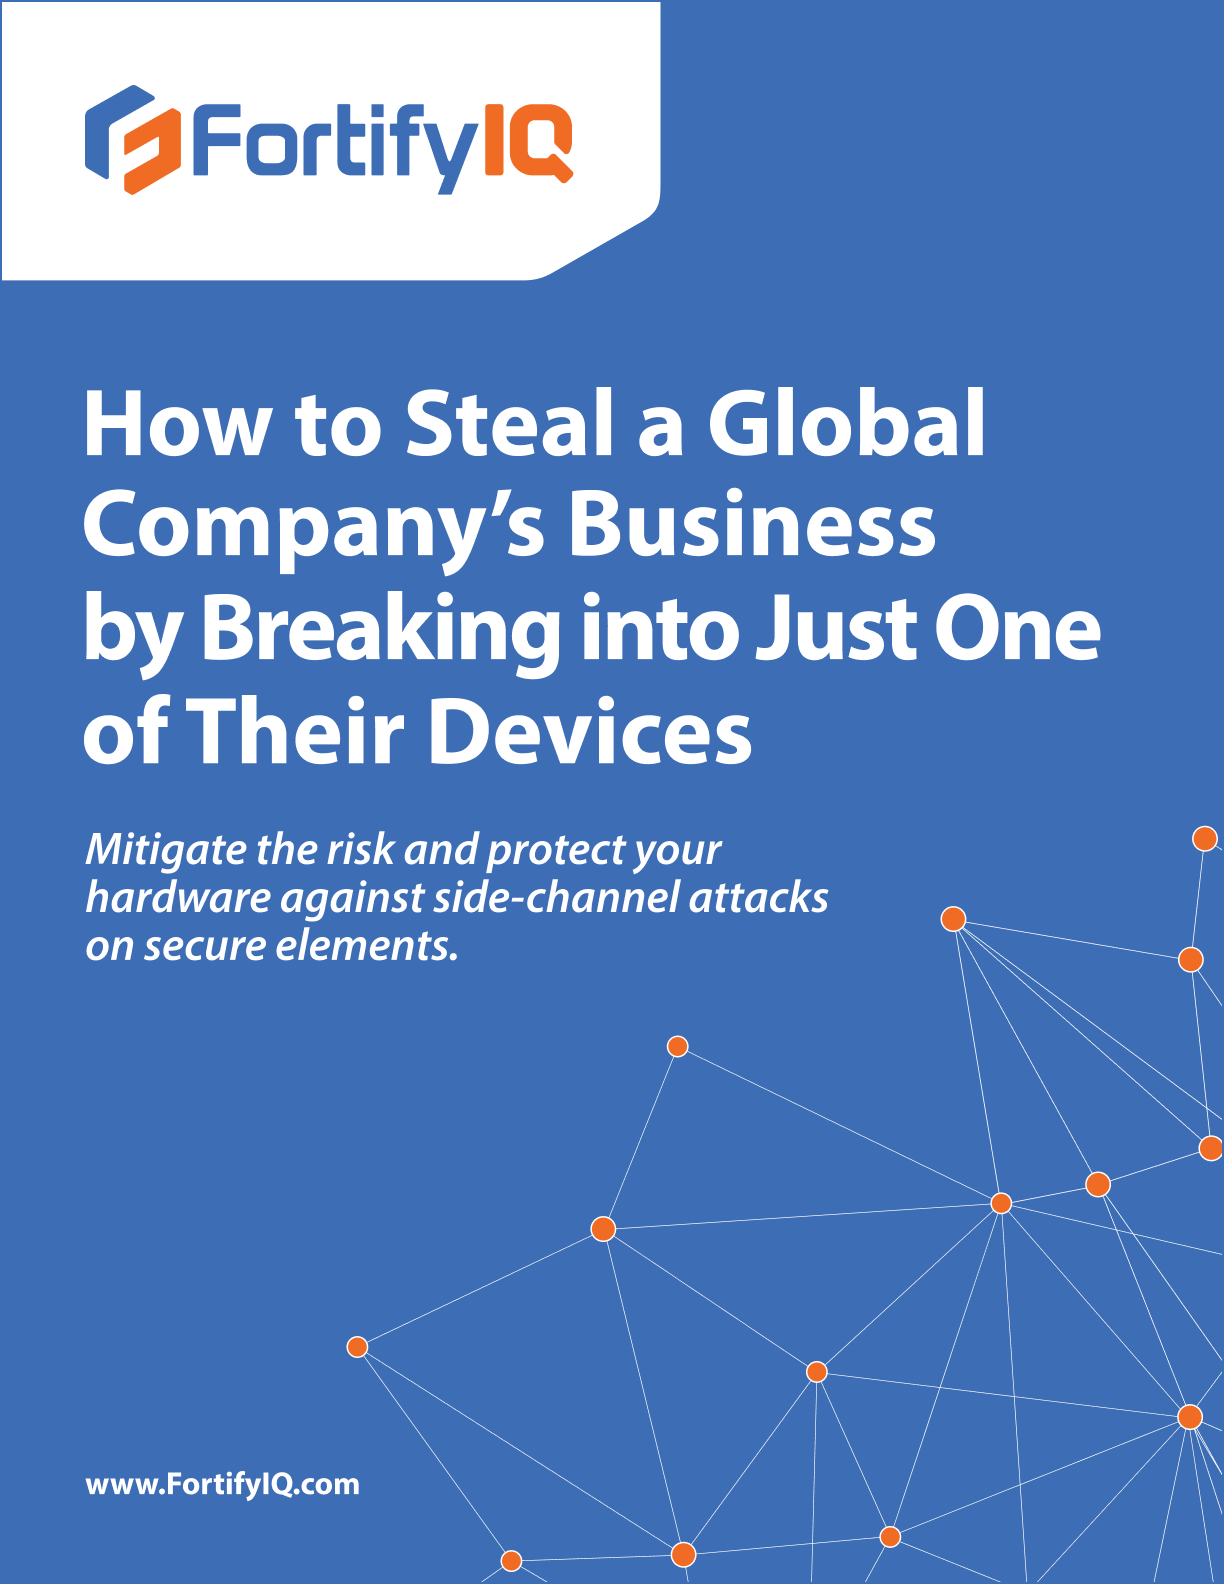 How to steal a global company's business by breaking into just one of their devices whitepaper cover